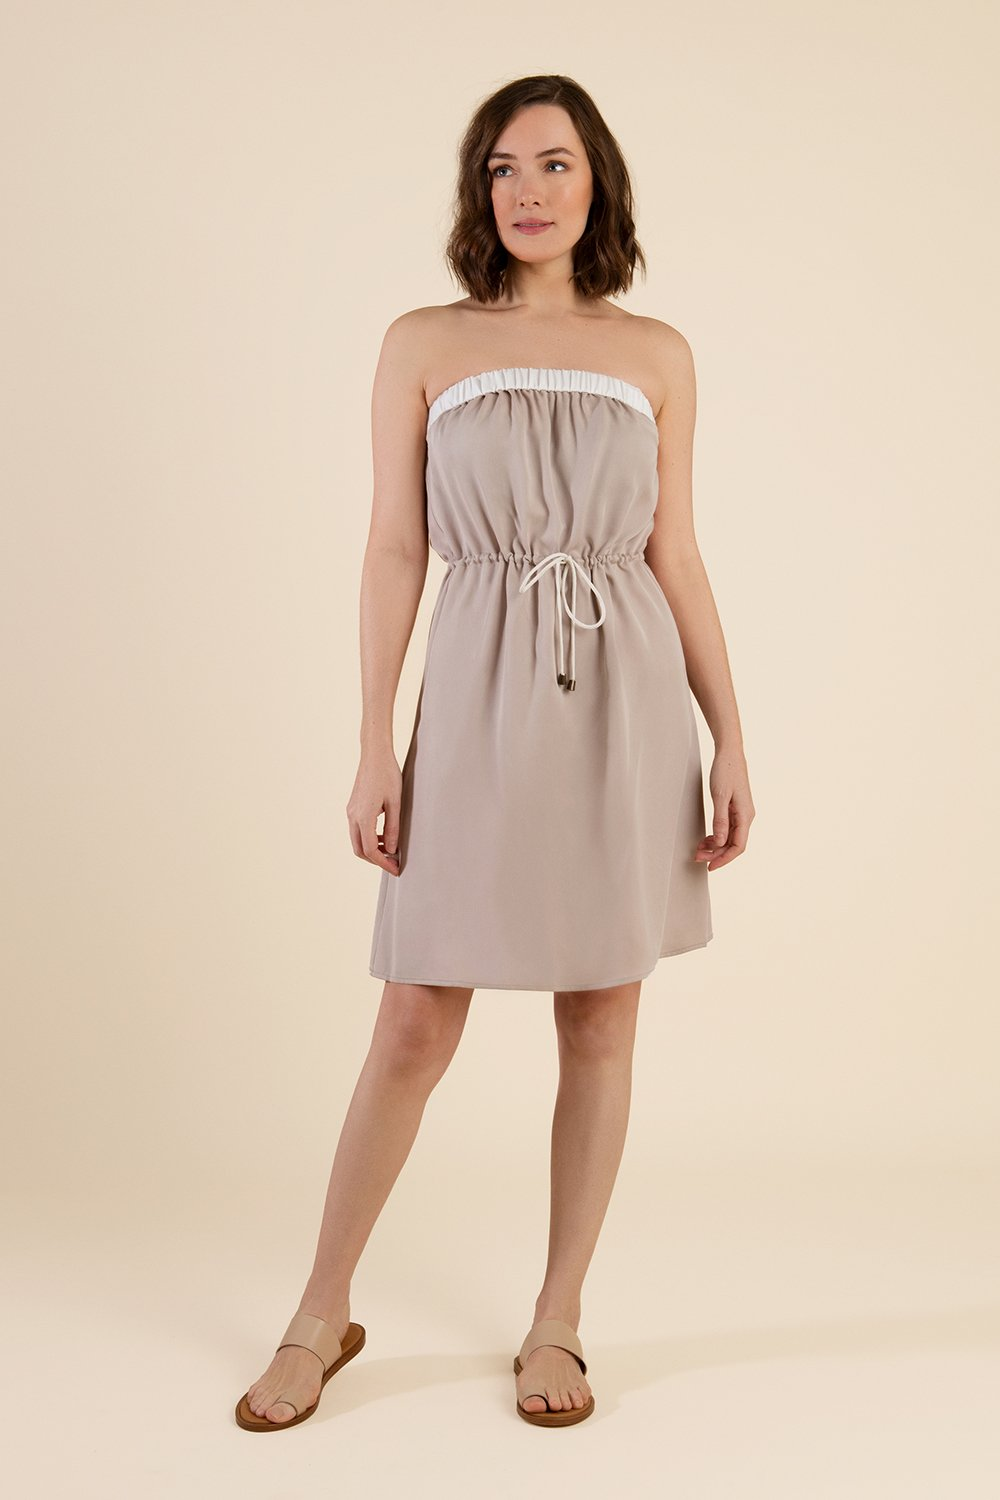 Beige Strapless Summer Dress - Cat Turner